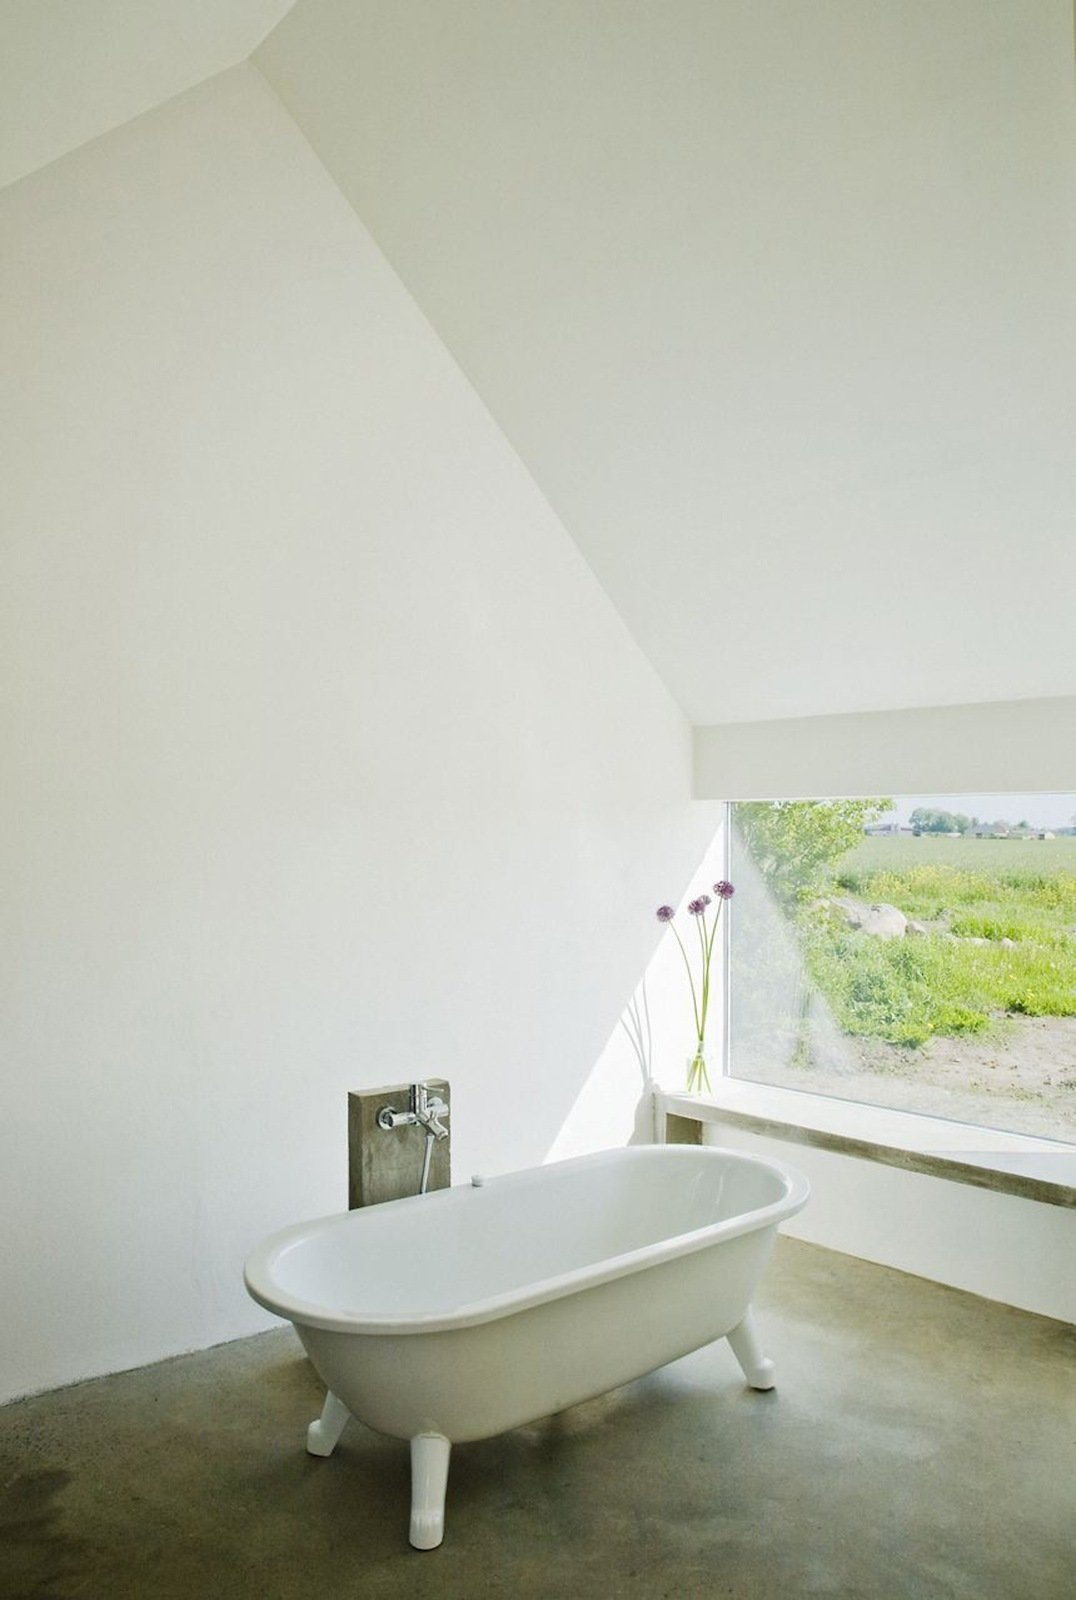 """The original washing house connected to the main house was in such bad shape that it had to be demolished. LASC """"reincarnated"""" it as a spacious bathhouse, complete with a tub‐with-a-view and a heated concrete window bench. Photo by Laura Stamer.  Baths from How to: Designing for Warm Weather"""